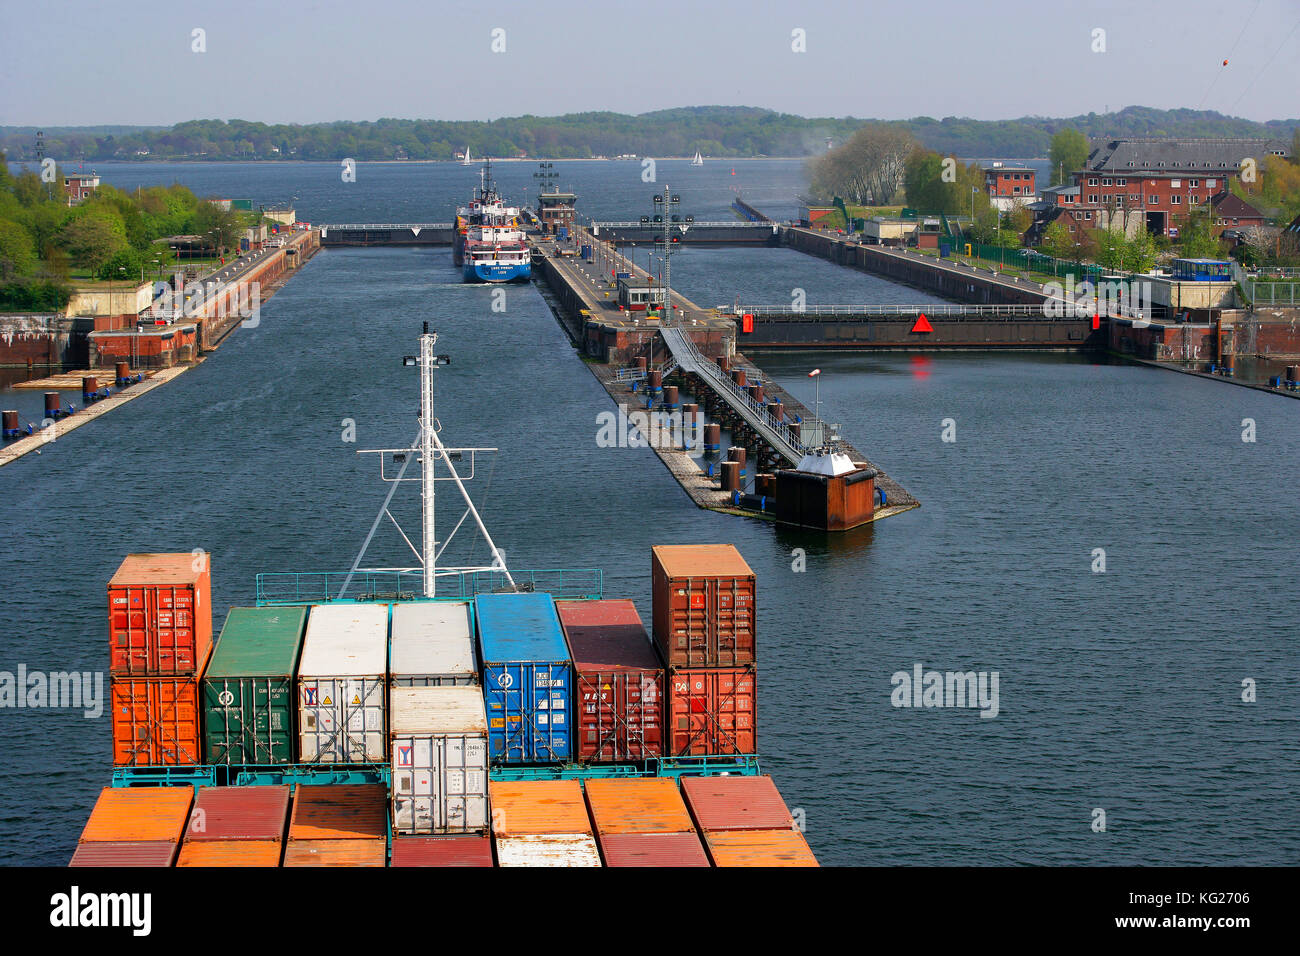 Kiel Canal, lock at Kiel-Holtenau, Schleswig-Holstein, Germany, Europe - Stock Image